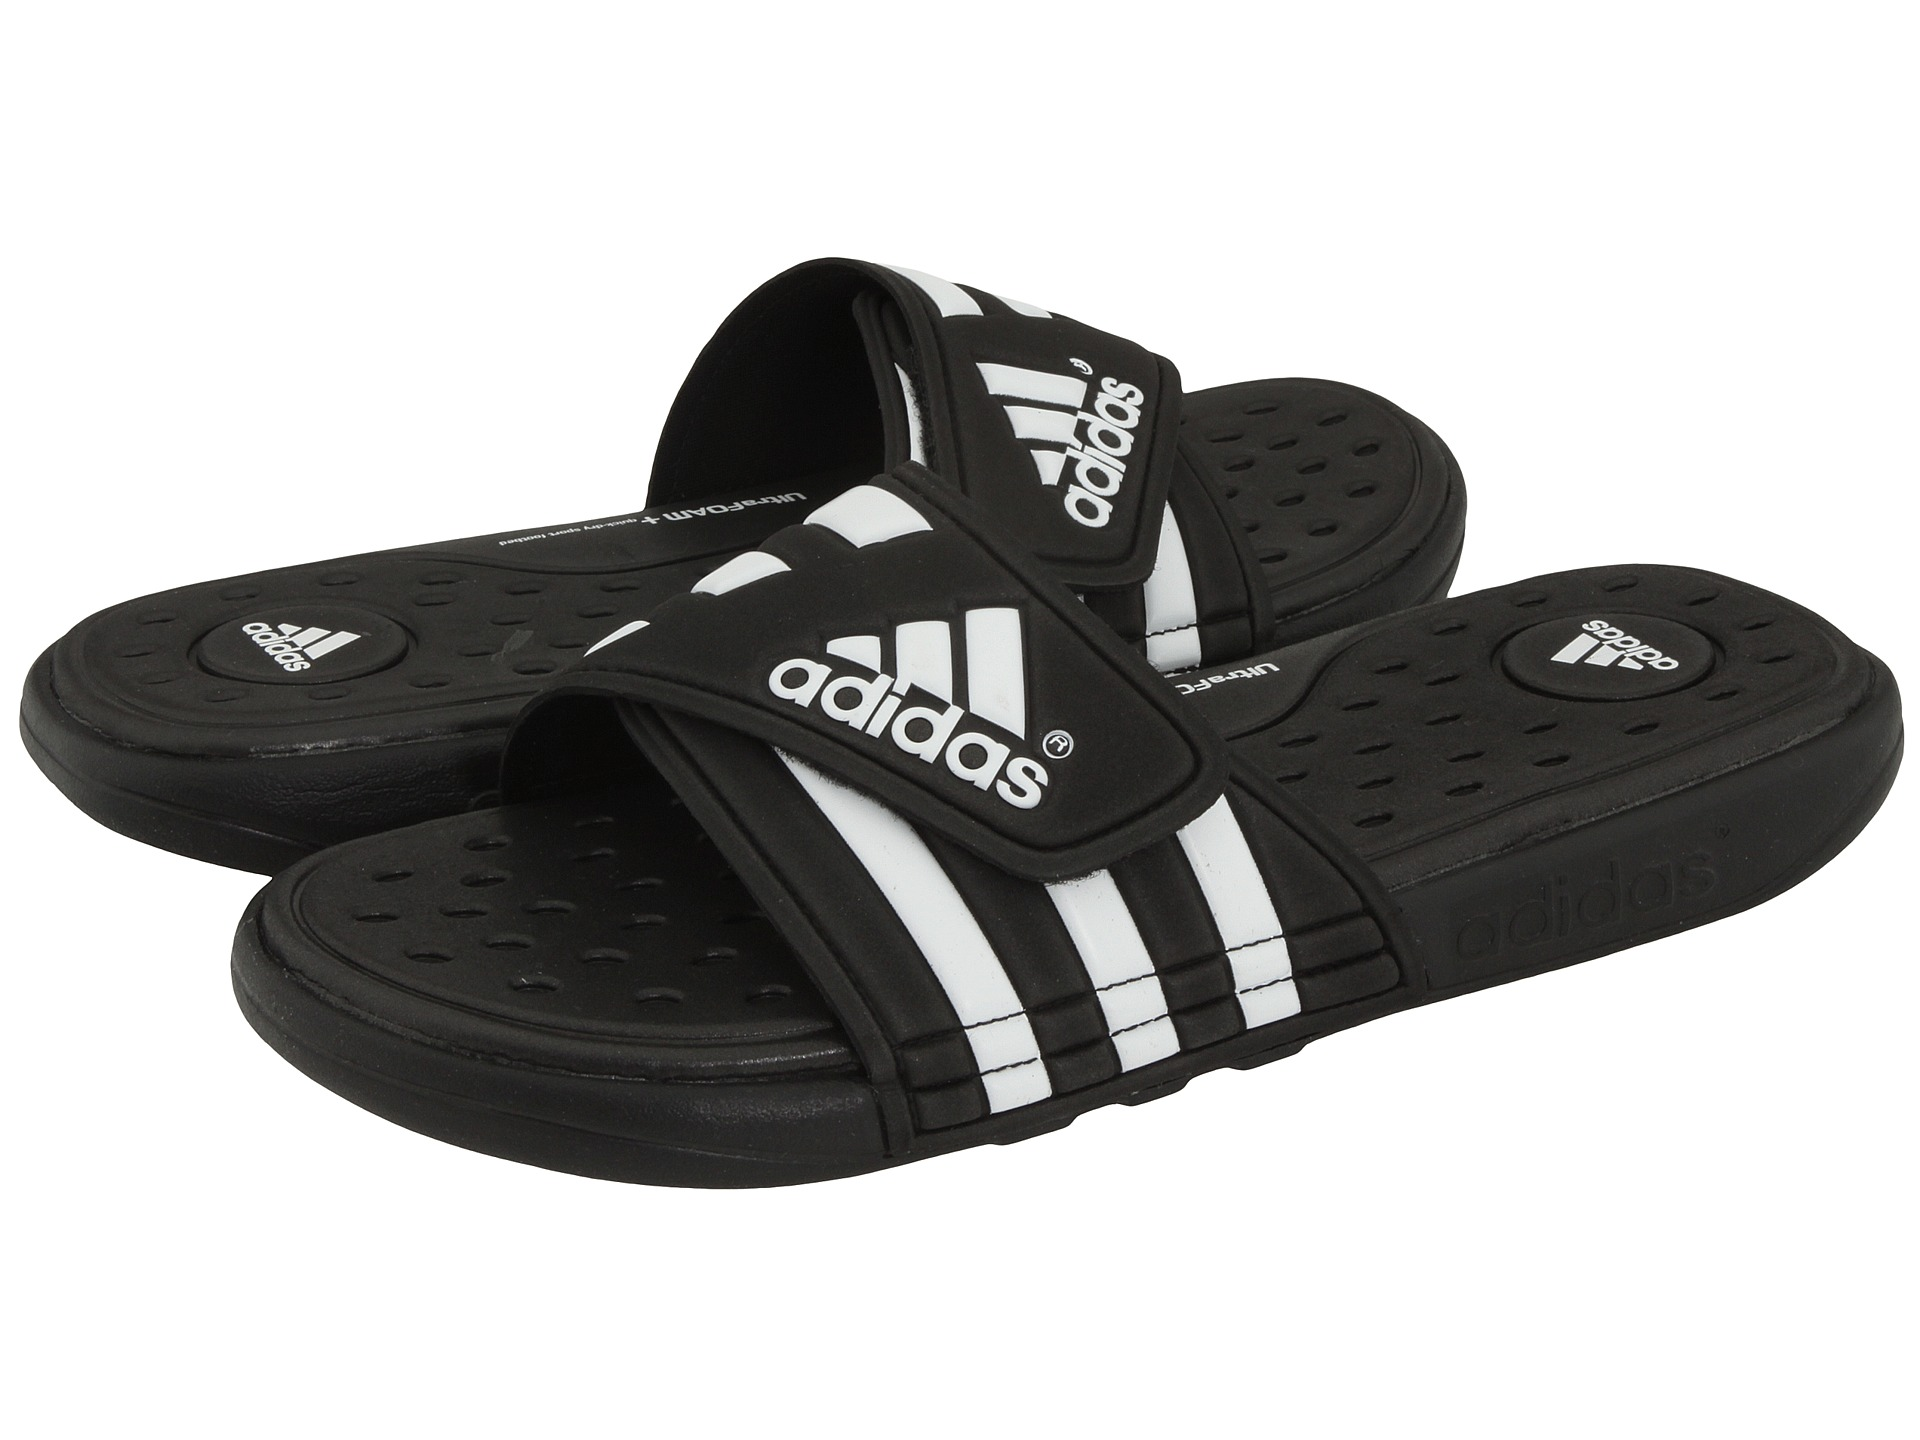 How Are Adidas Star Comfort Footbed Shoes